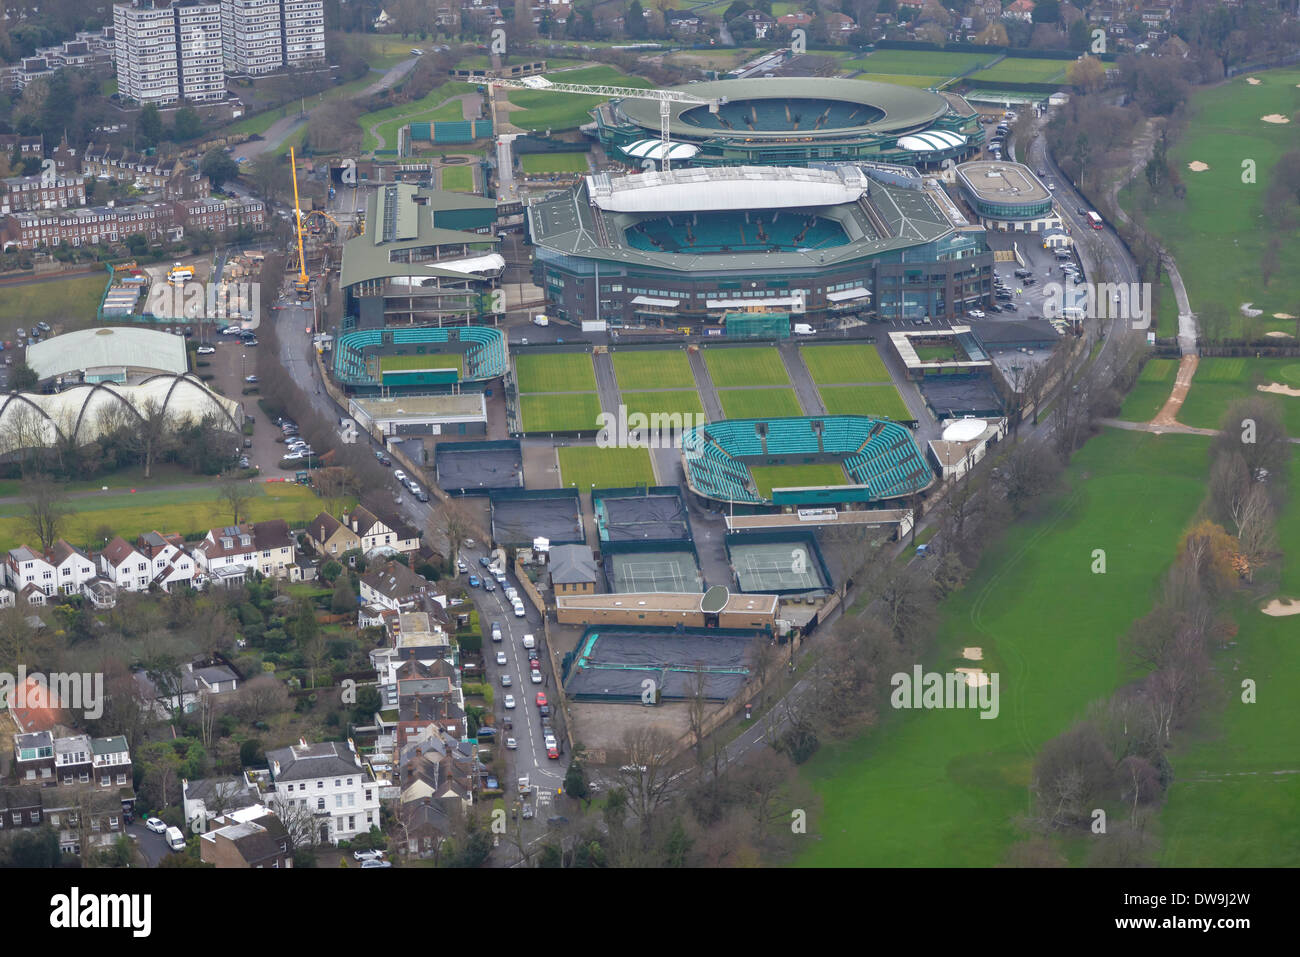 Aerial Photograph showing the All-England Tennis Club at Wimbledon - Stock Image